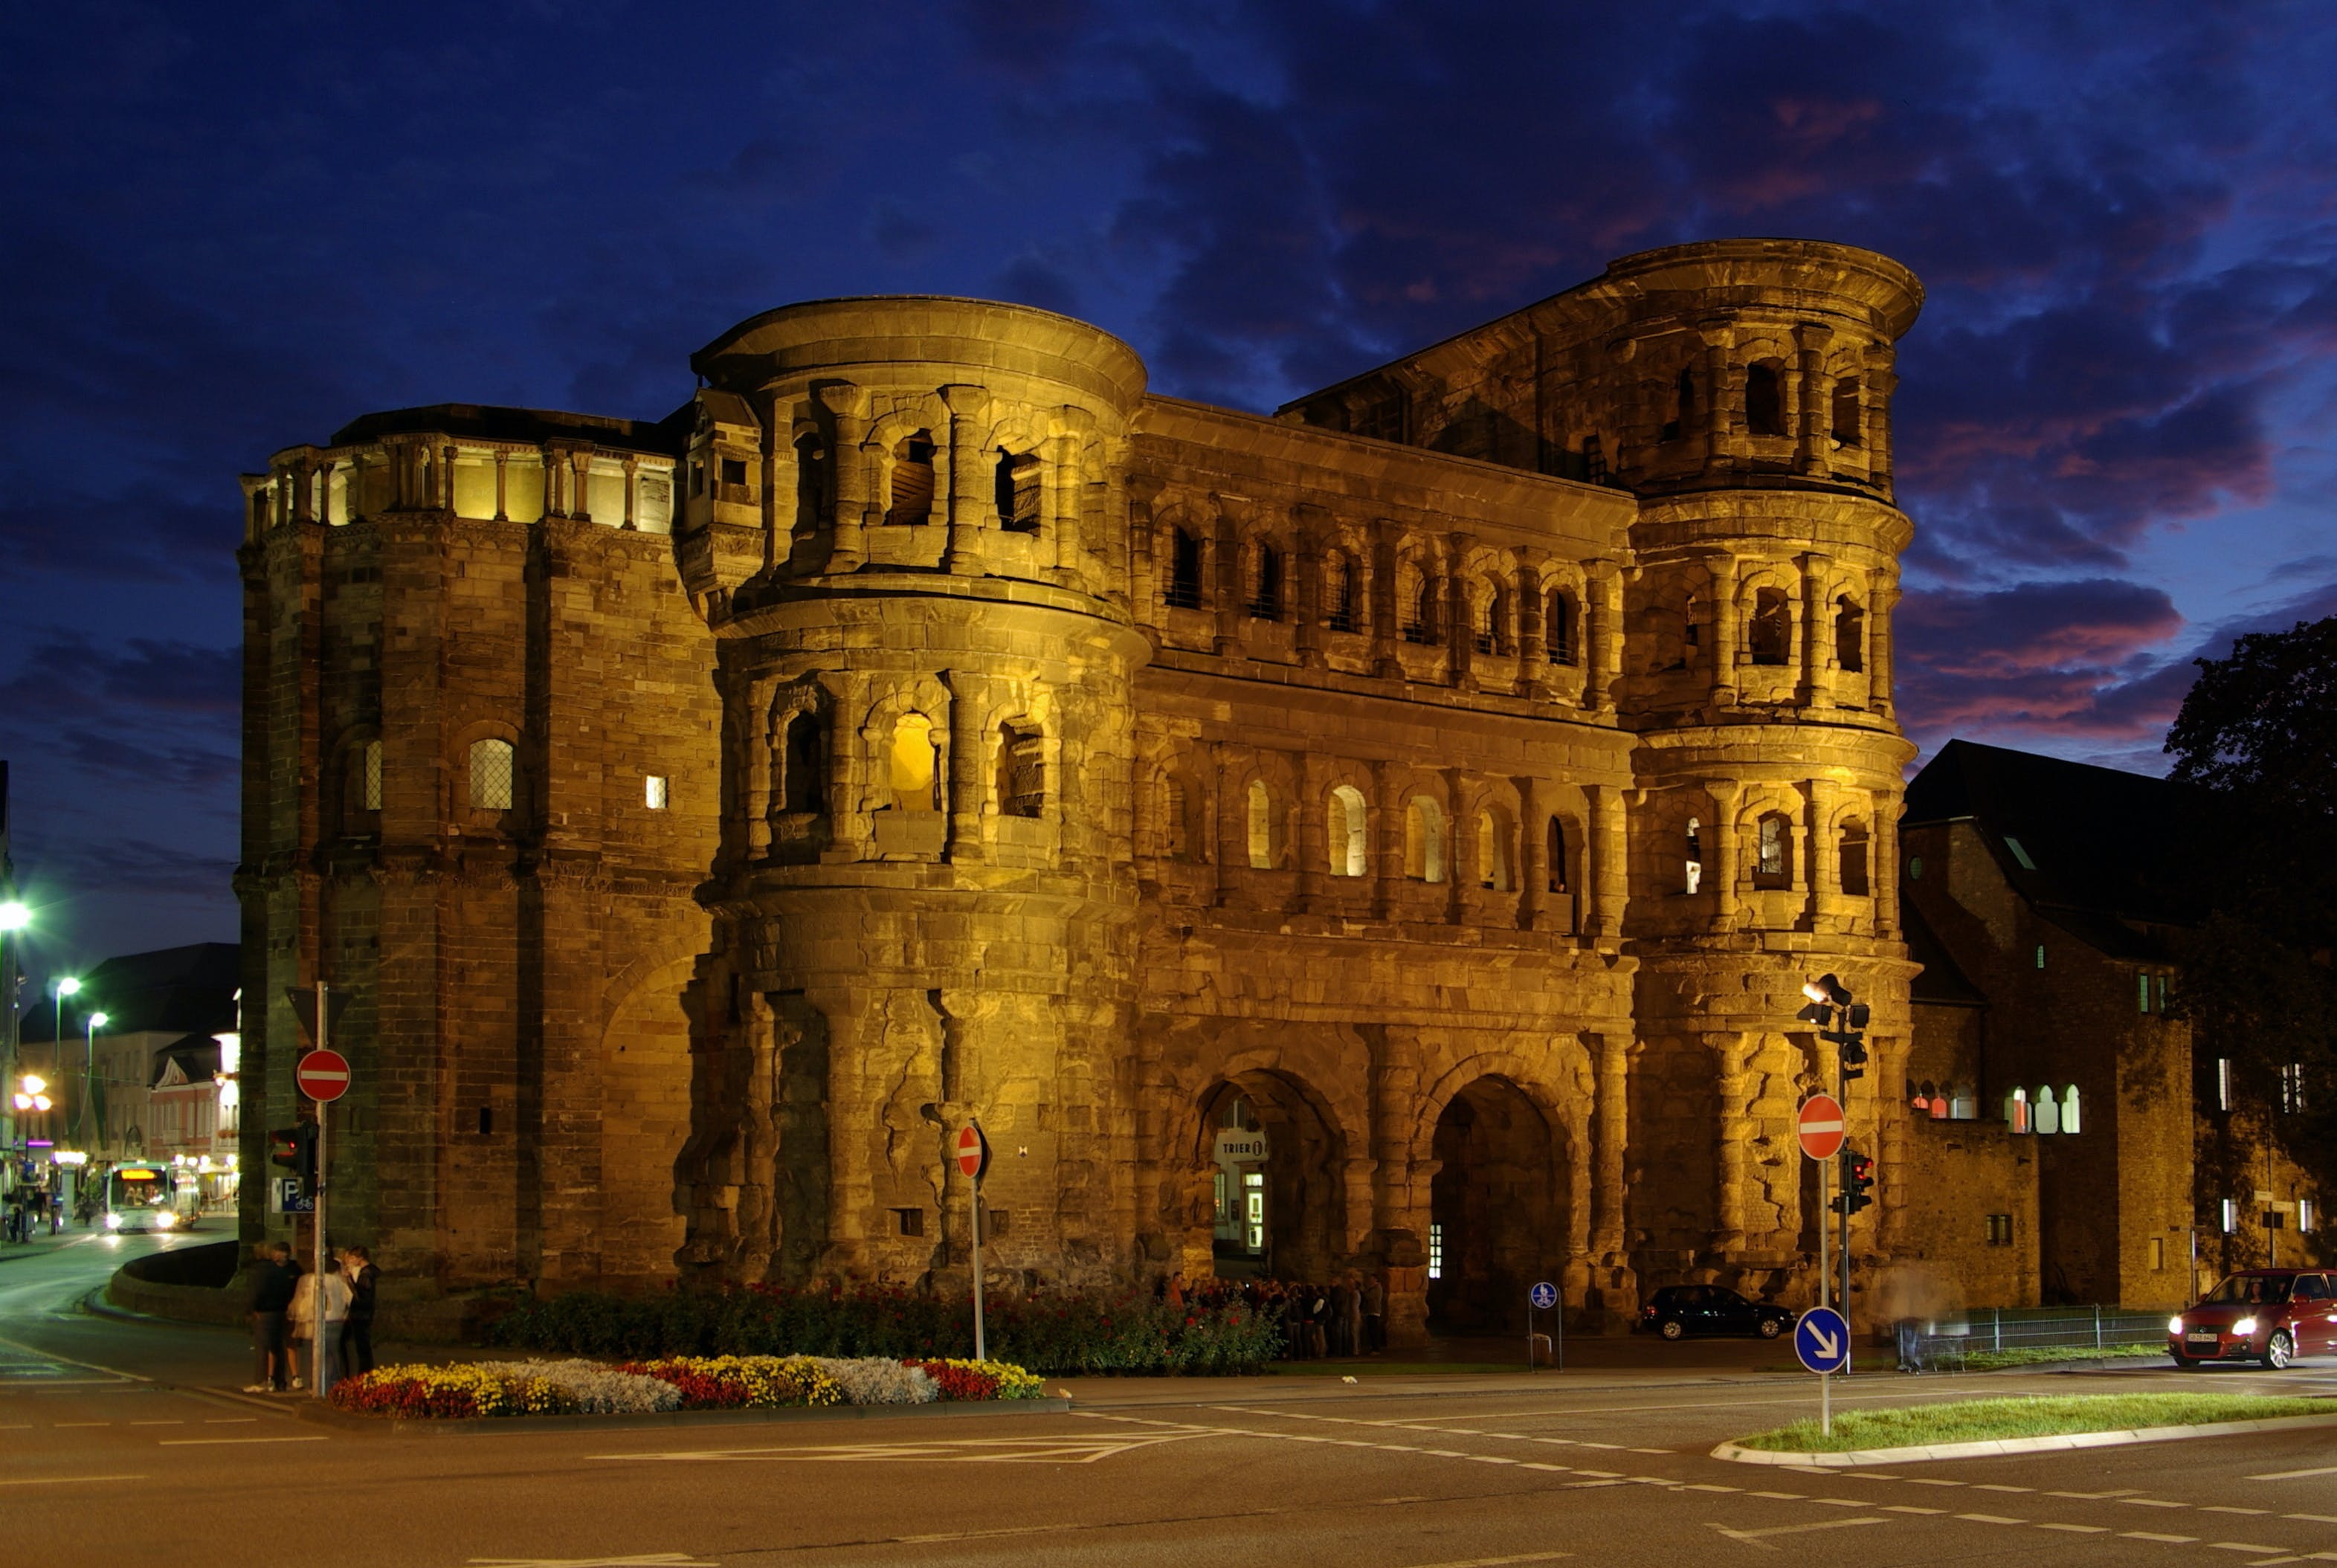 Porta Nigra - Hotel Brimer Sights and activities Mullerthal